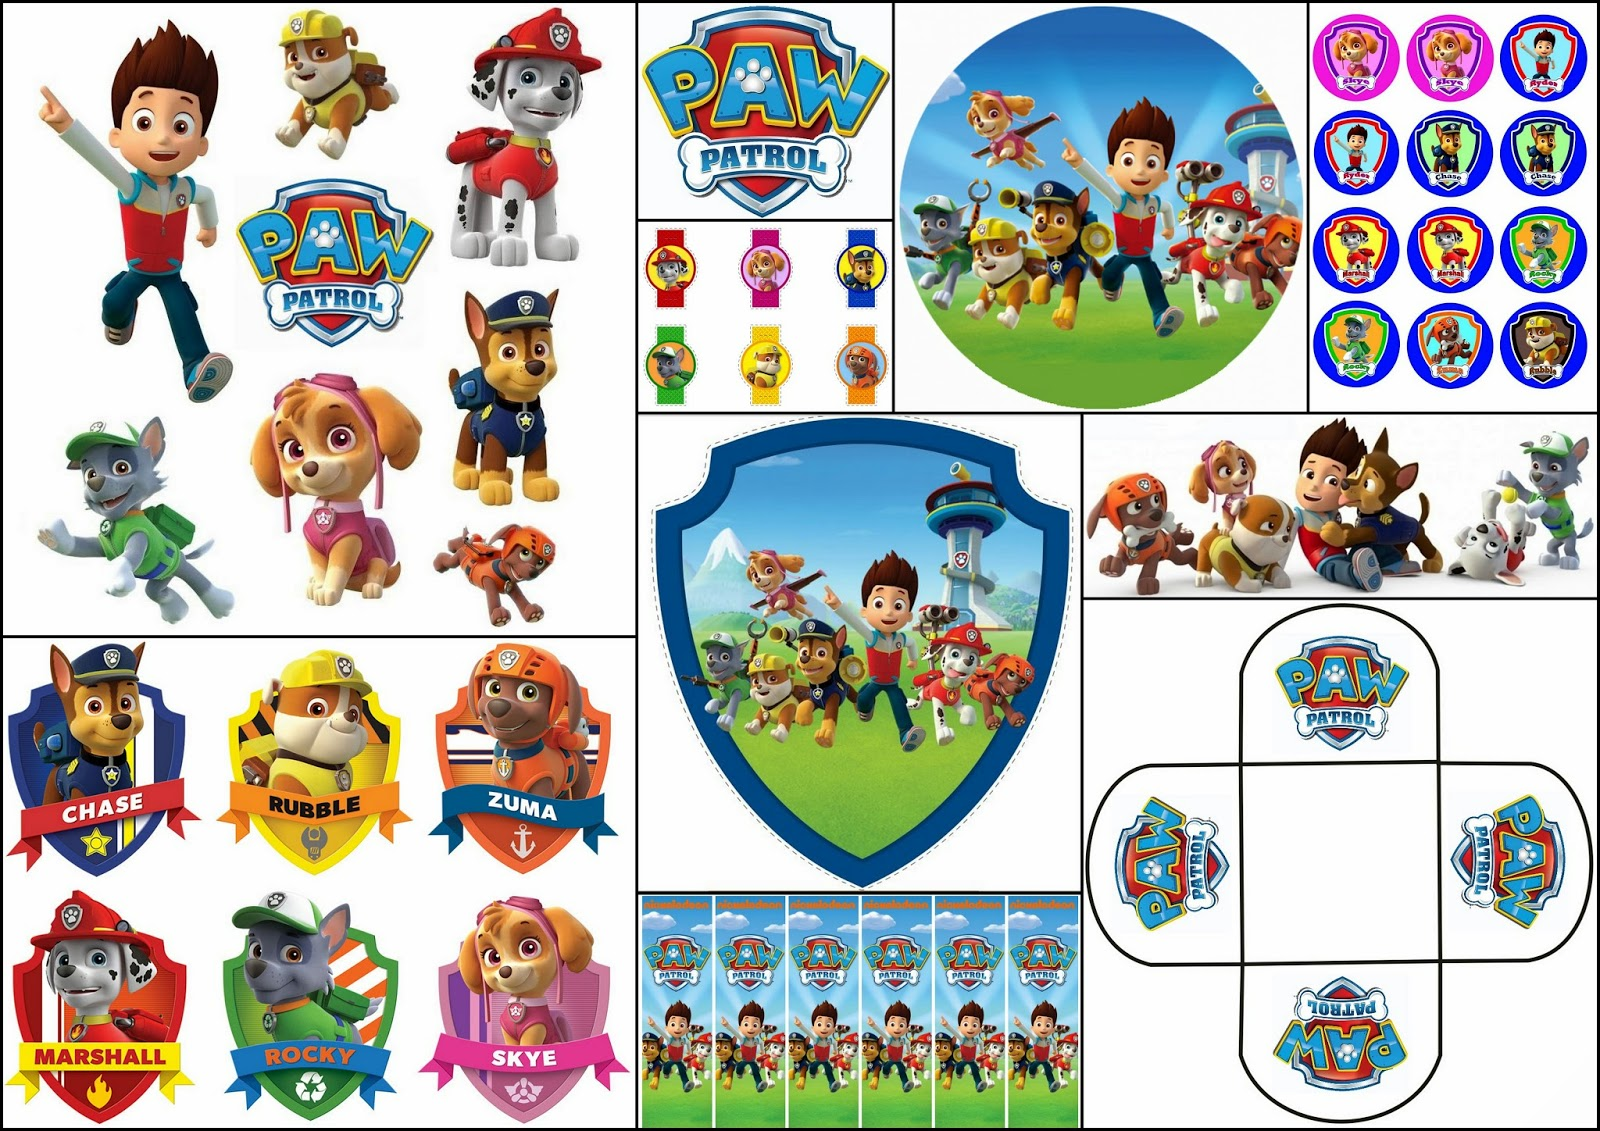 graphic relating to Printable Paw Patrol named Paw Patrol No cost Printable Package. - Oh My Fiesta! within english